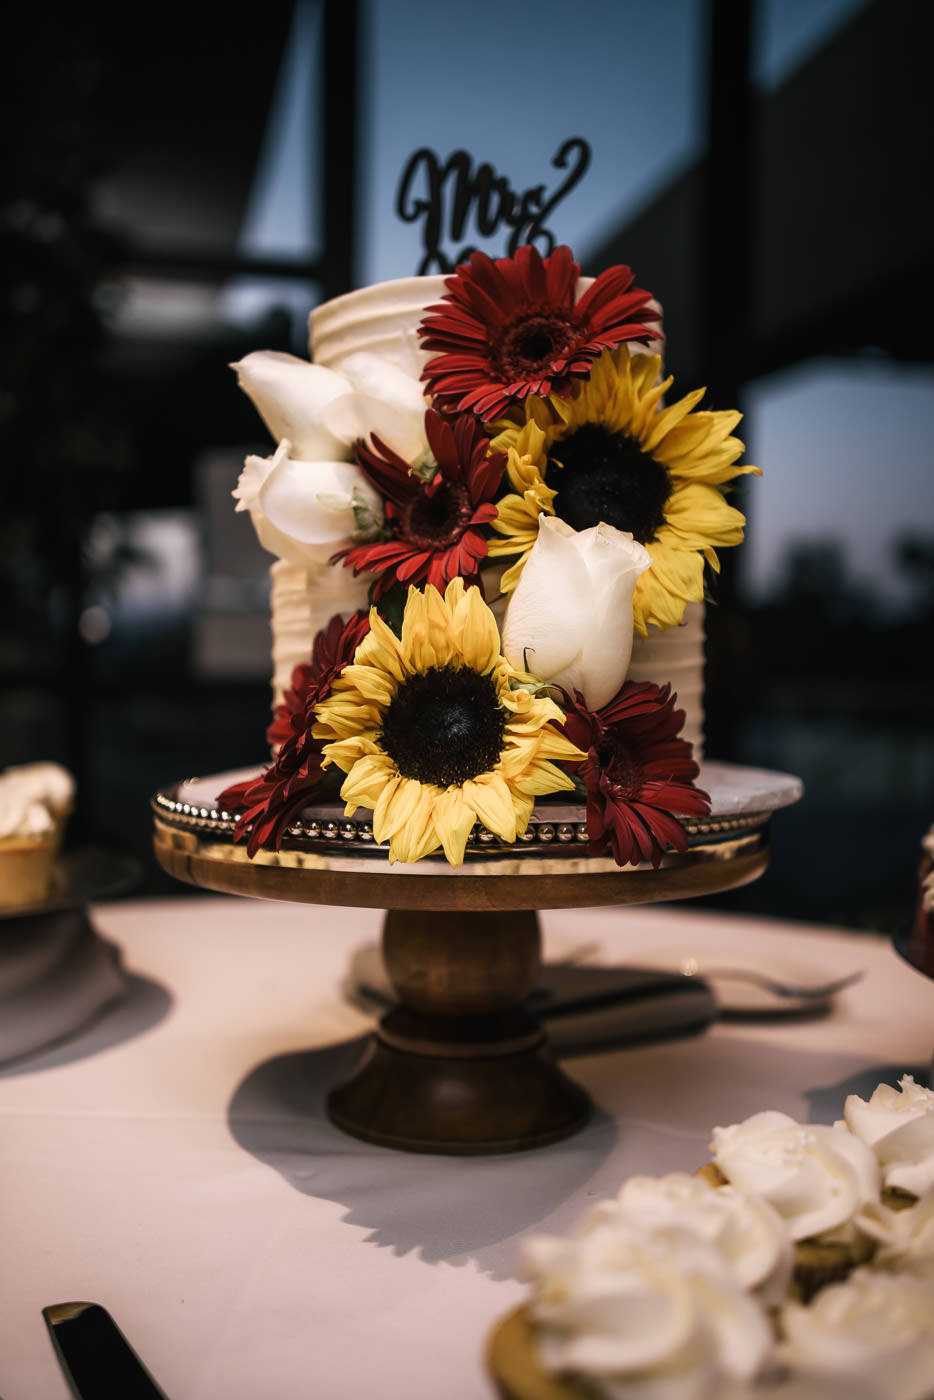 White wedding cake with yellow sunflowers and red daisies.